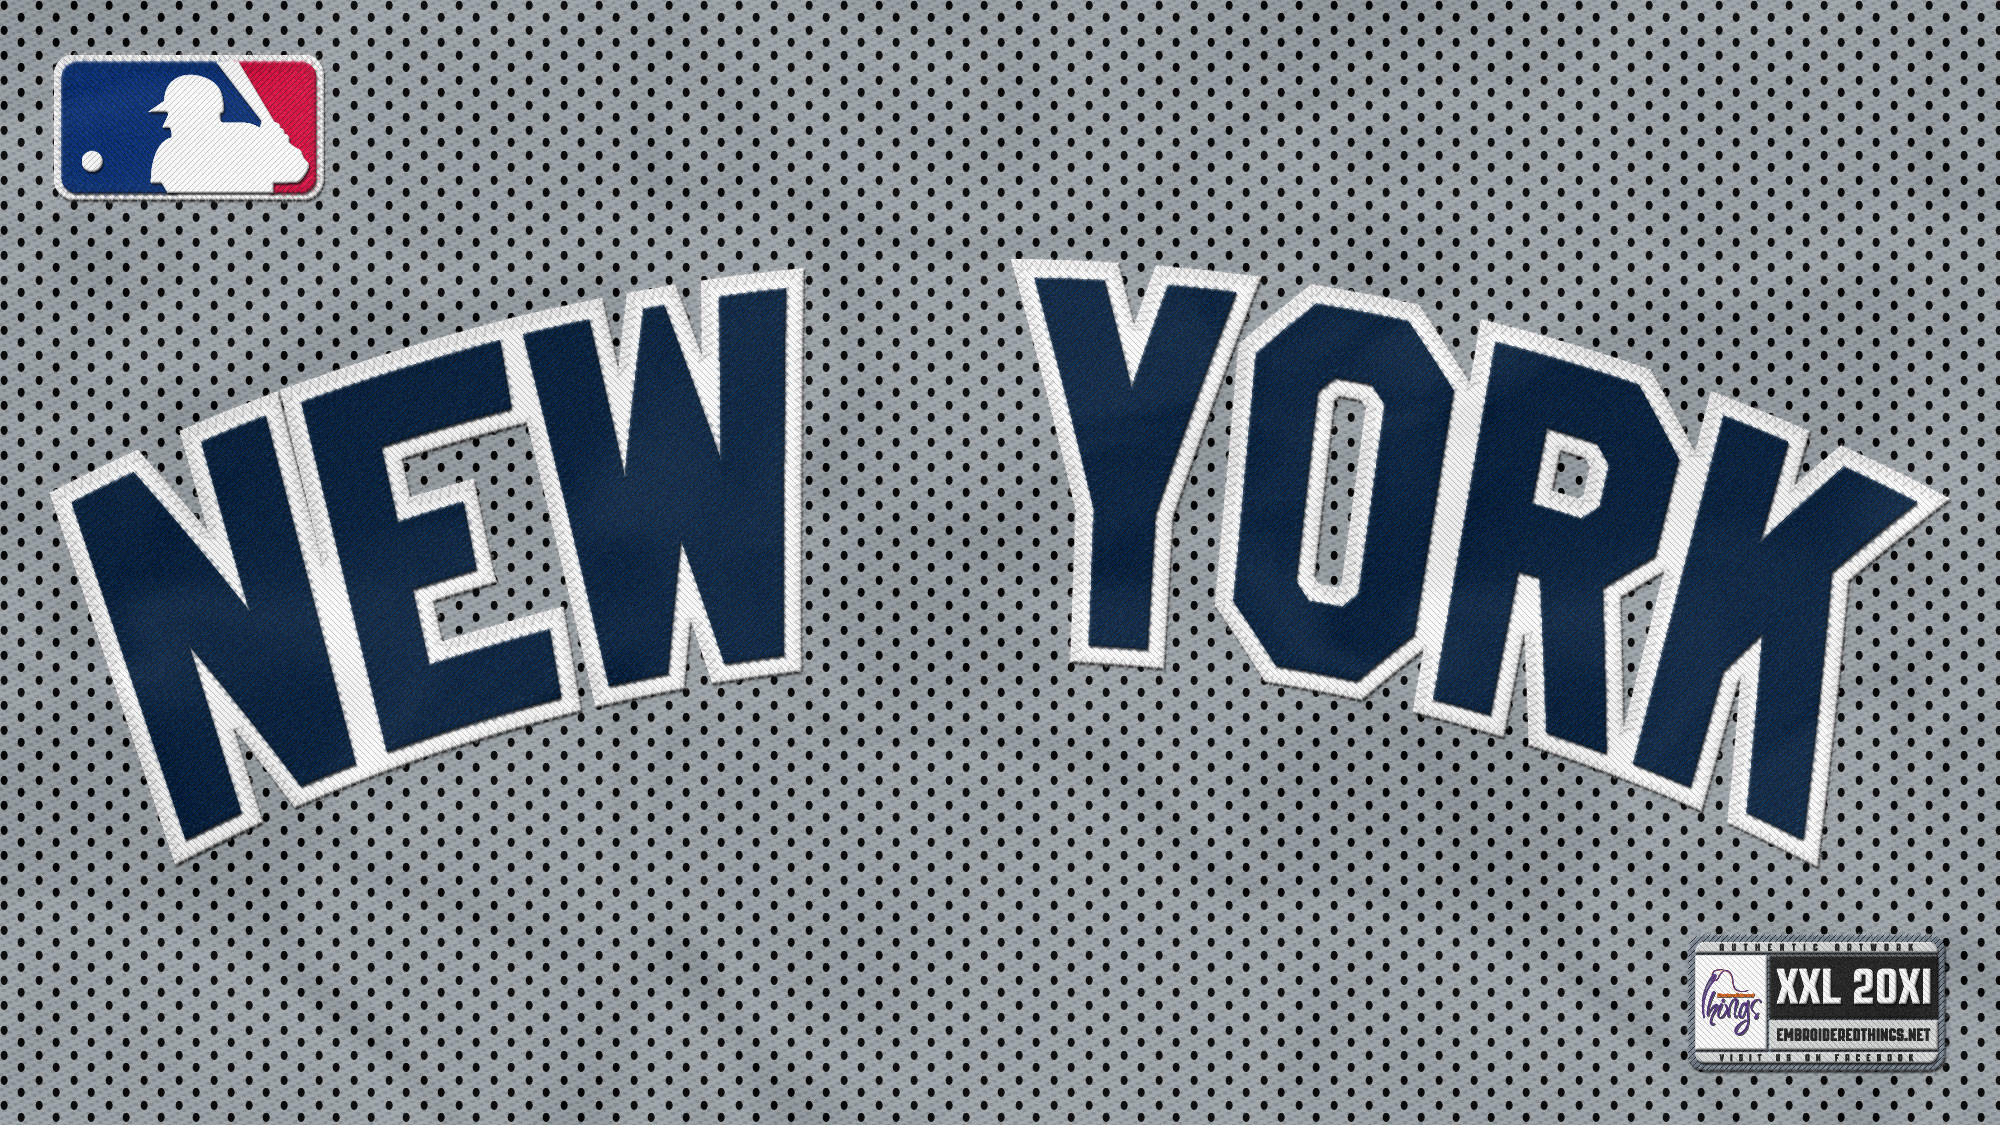 2000x1125 New York Yankees wallpapers